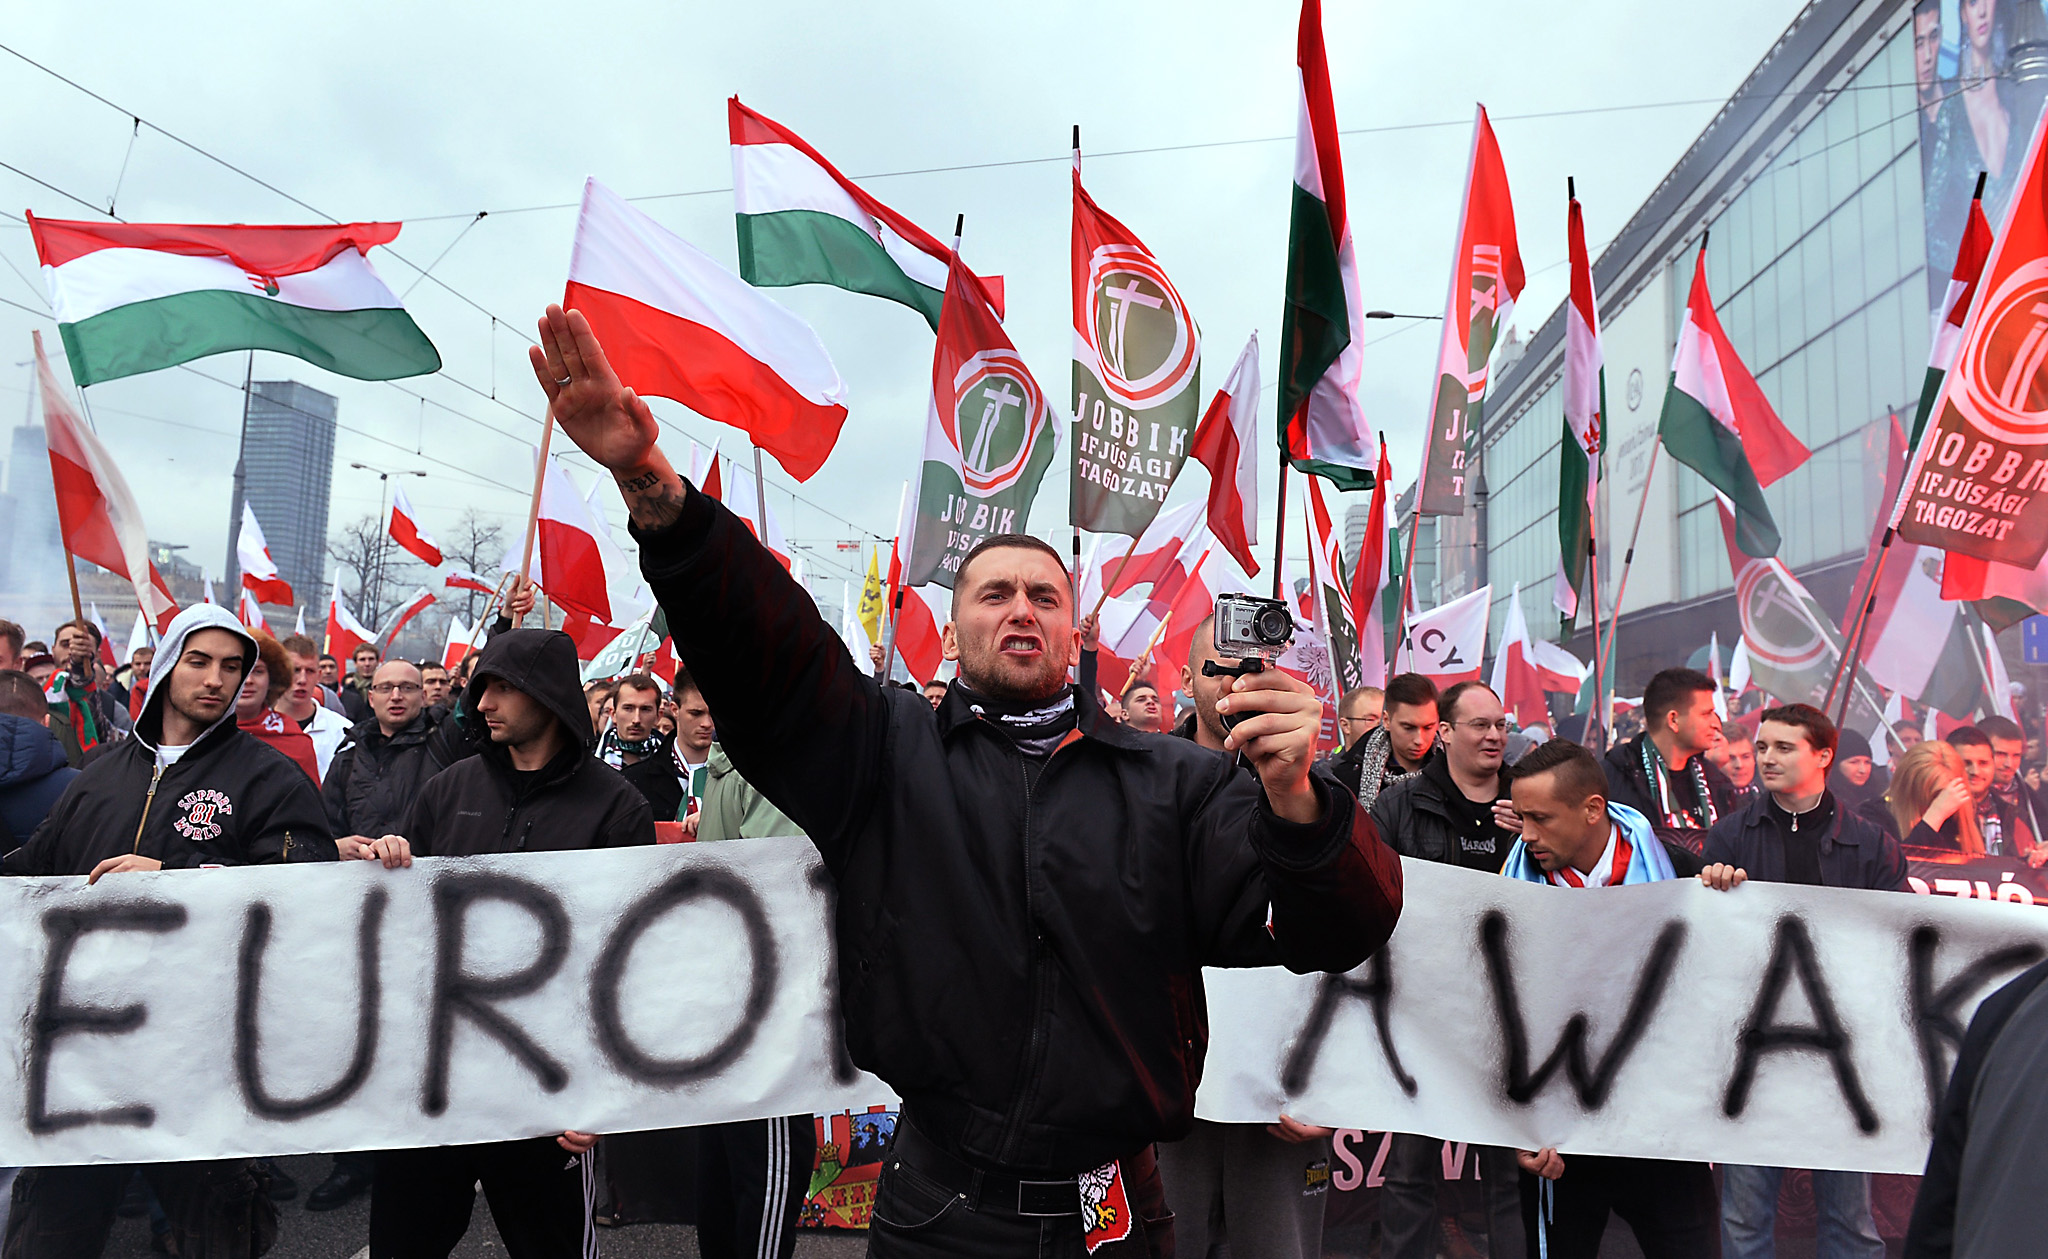 "POLAND-POLITICS-FARRIGHT-DEMO...A demonstrator shouts and performs a Nazi salute in front of banner reading ""Europe awake"" followed by a group of Hungarian Jobbik party representatives during an annual march commemorating Poland's National Independence Day in Warsaw on November 11, 2015. Poland's National Independence Day commemorates the anniversary of the Restoration of a Polish State in 1918. AFP PHOTO / JANEK SKARZYNSKI        (Photo credit should read JANEK SKARZYNSKI/AFP/Getty Images)"